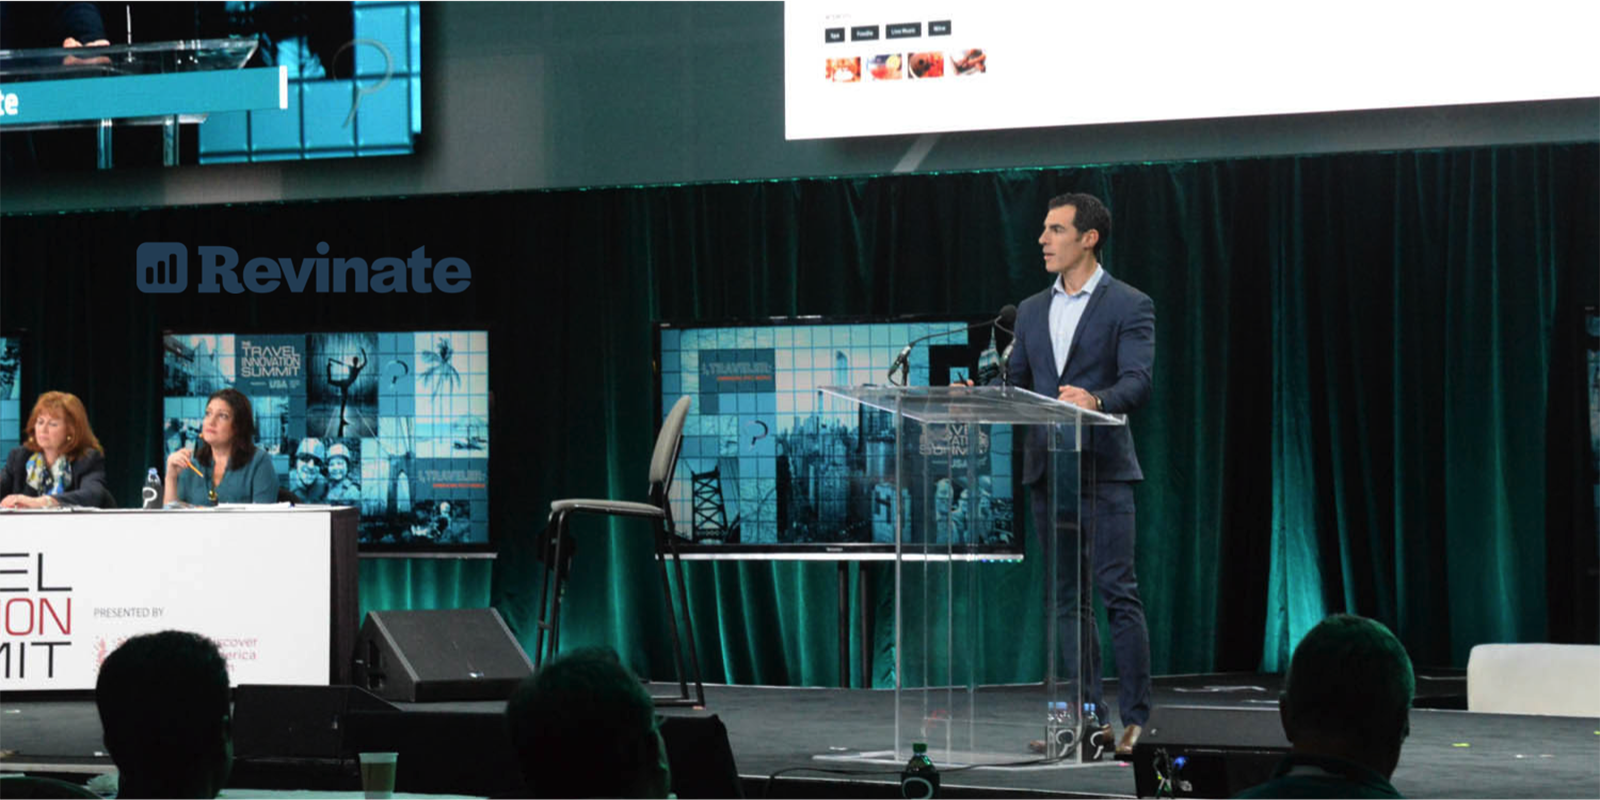 Revinate Case Study - Phocuswright Innovation Platform - Phocuswright Conference